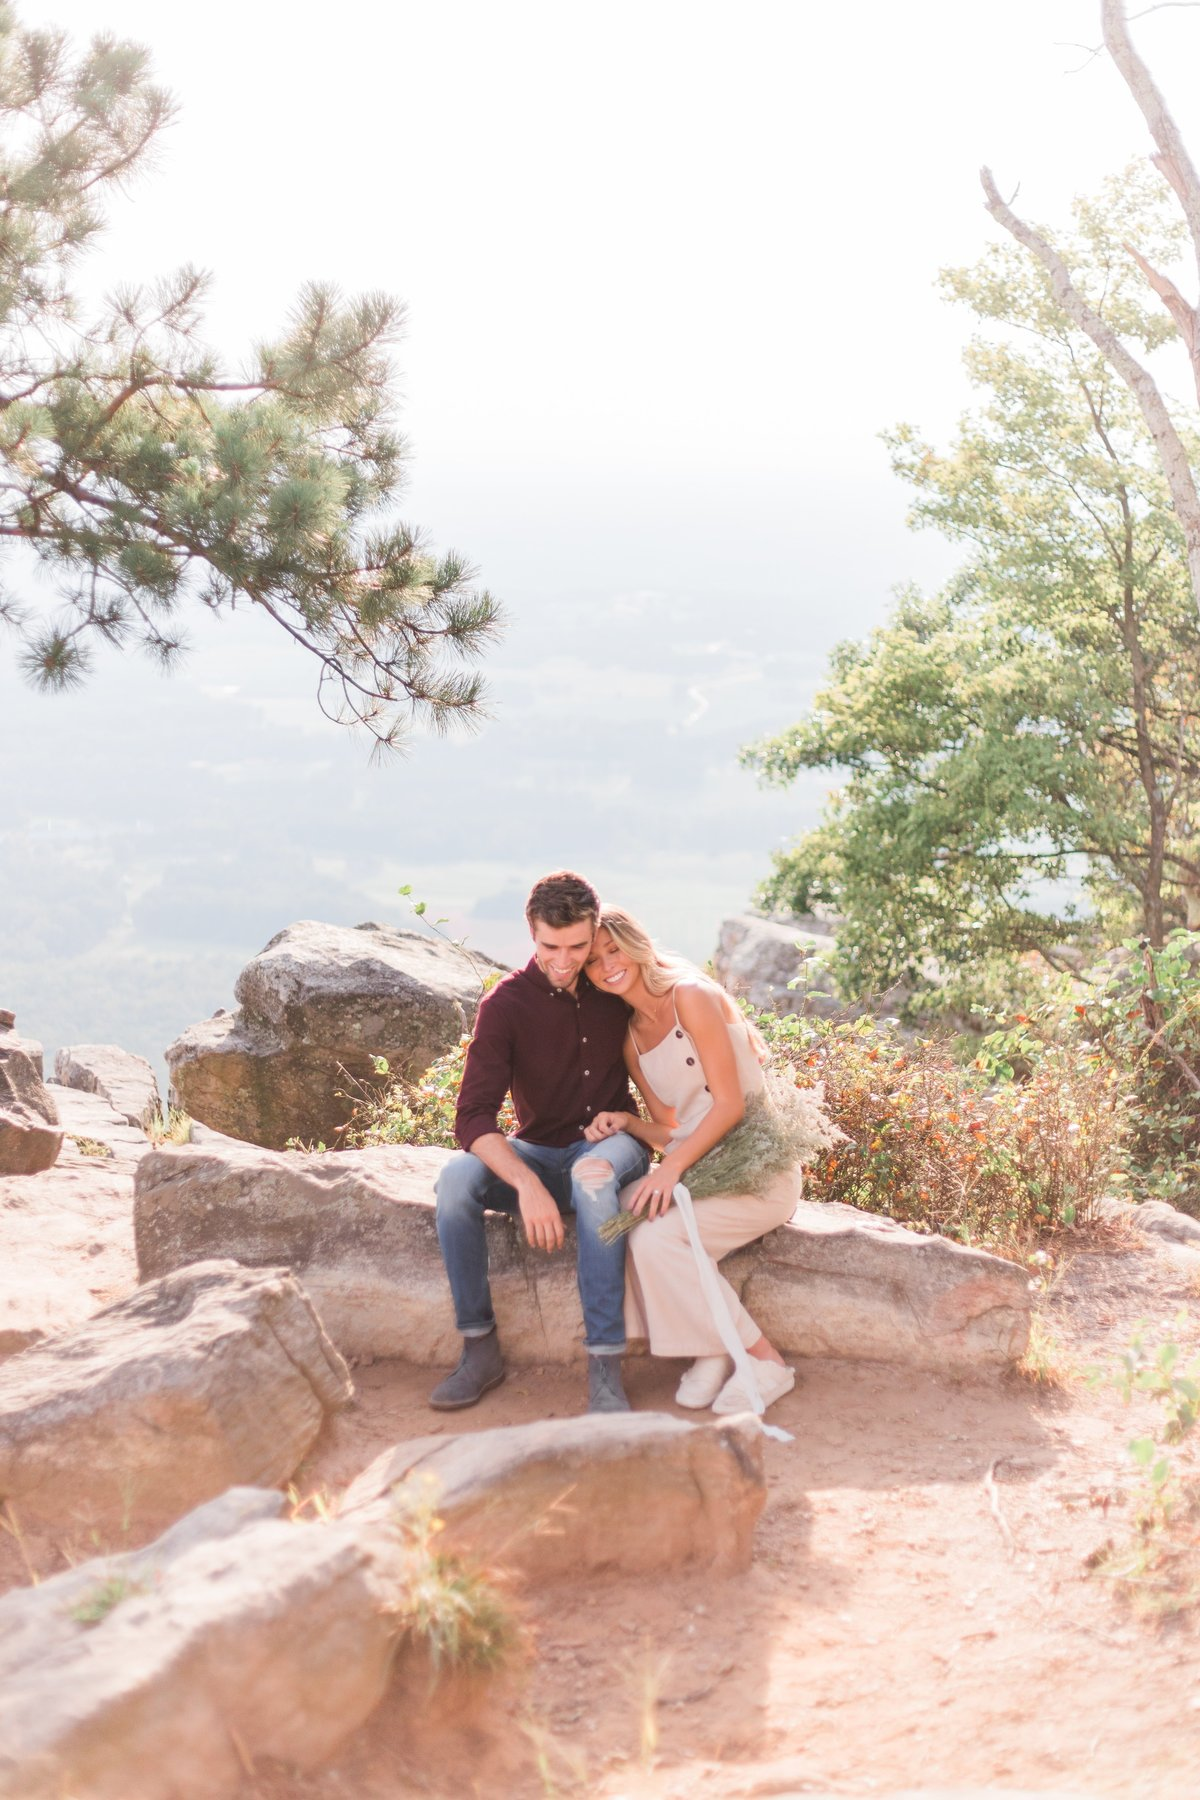 boone-engagement-session-destination-wedding-photographer-58